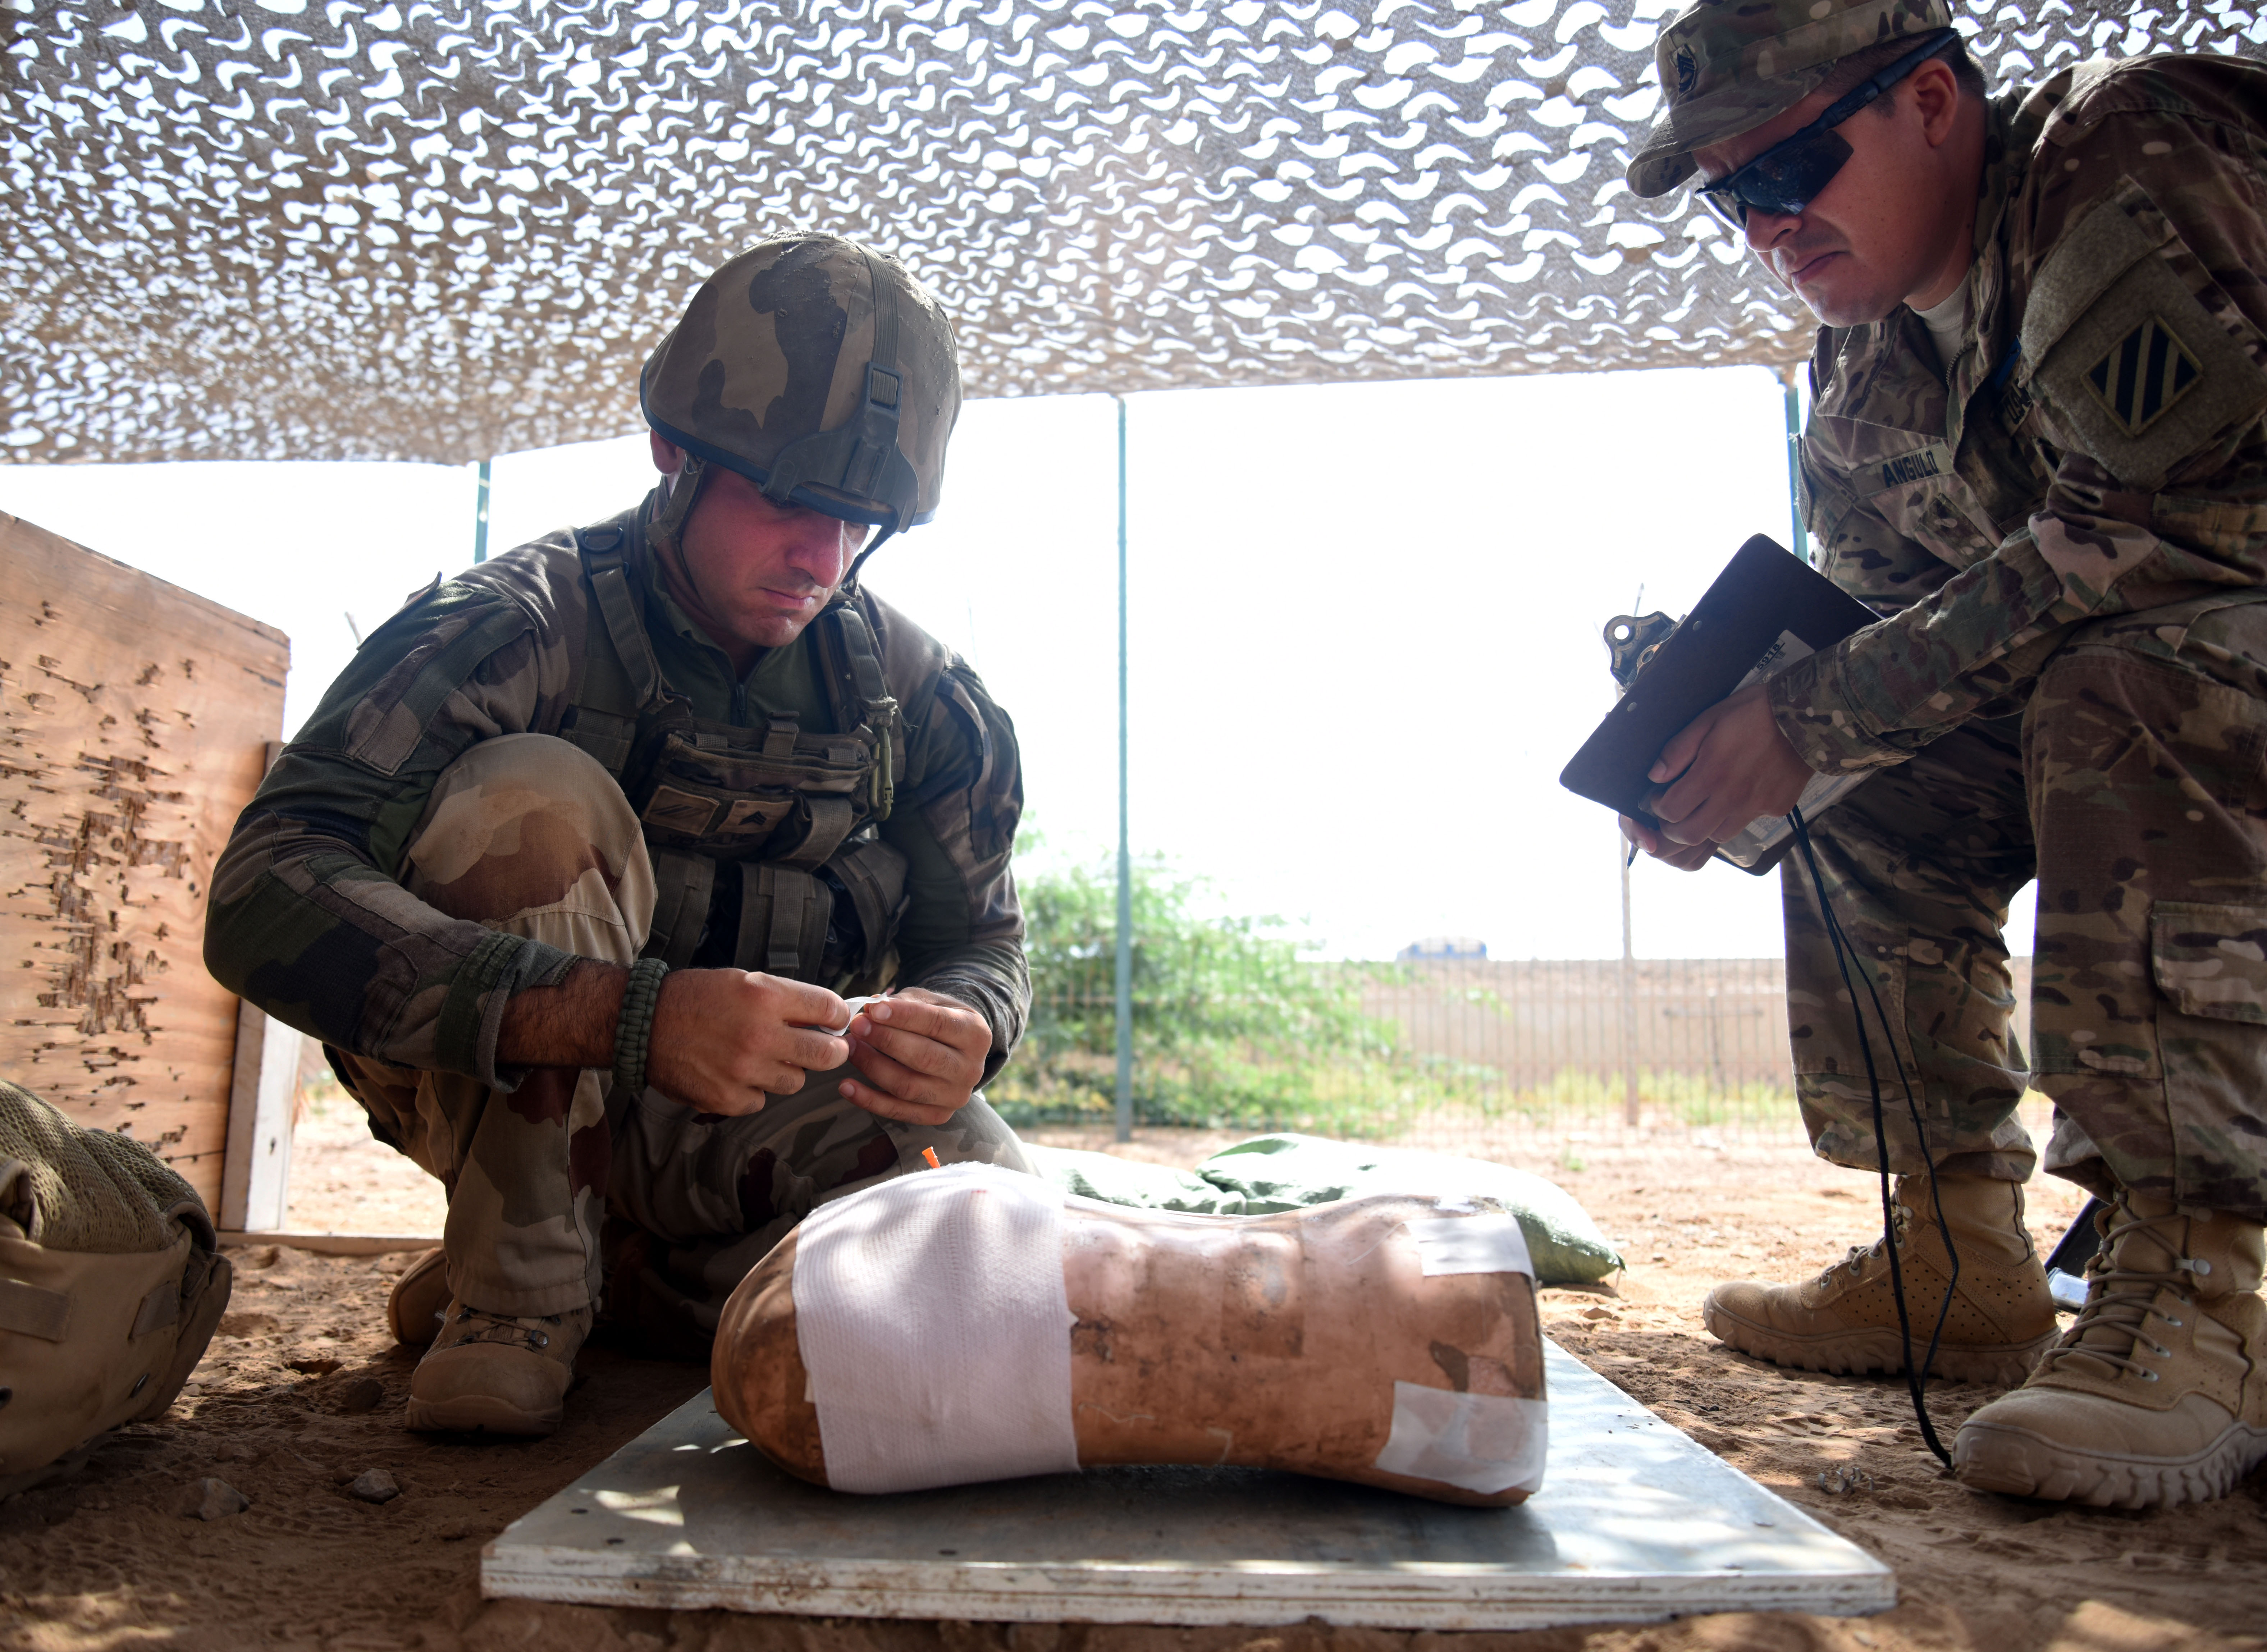 French Army Cpl. Timothy, Expert Infantry Badge candidate, treats a simulated patient while being evaluated March 30, 2016, during the medical portion of the EIB course at Camp Lemonnier, Djibouti. Since 1944, there haven't been many changes to the EIB process, but this course proved different in more ways than one as several French infantrymen also participated. (U.S. Air Force photo by Staff Sgt. Kate Thornton)